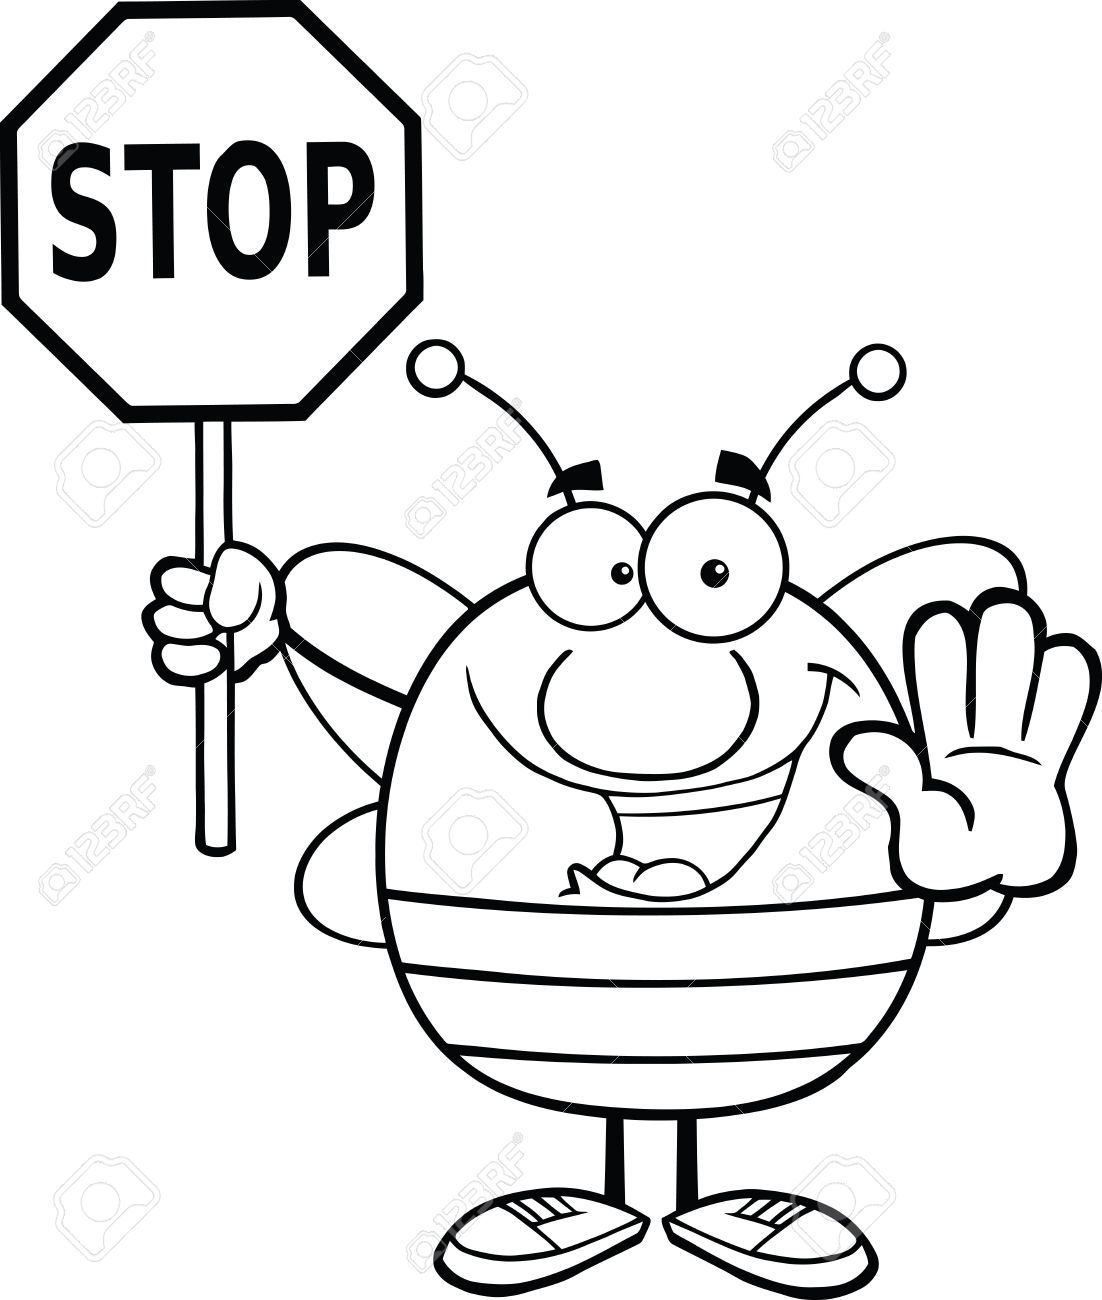 Black And White Pudgy Bee ... Black And White Pudgy Bee ... Stop Sign Clip Art ...